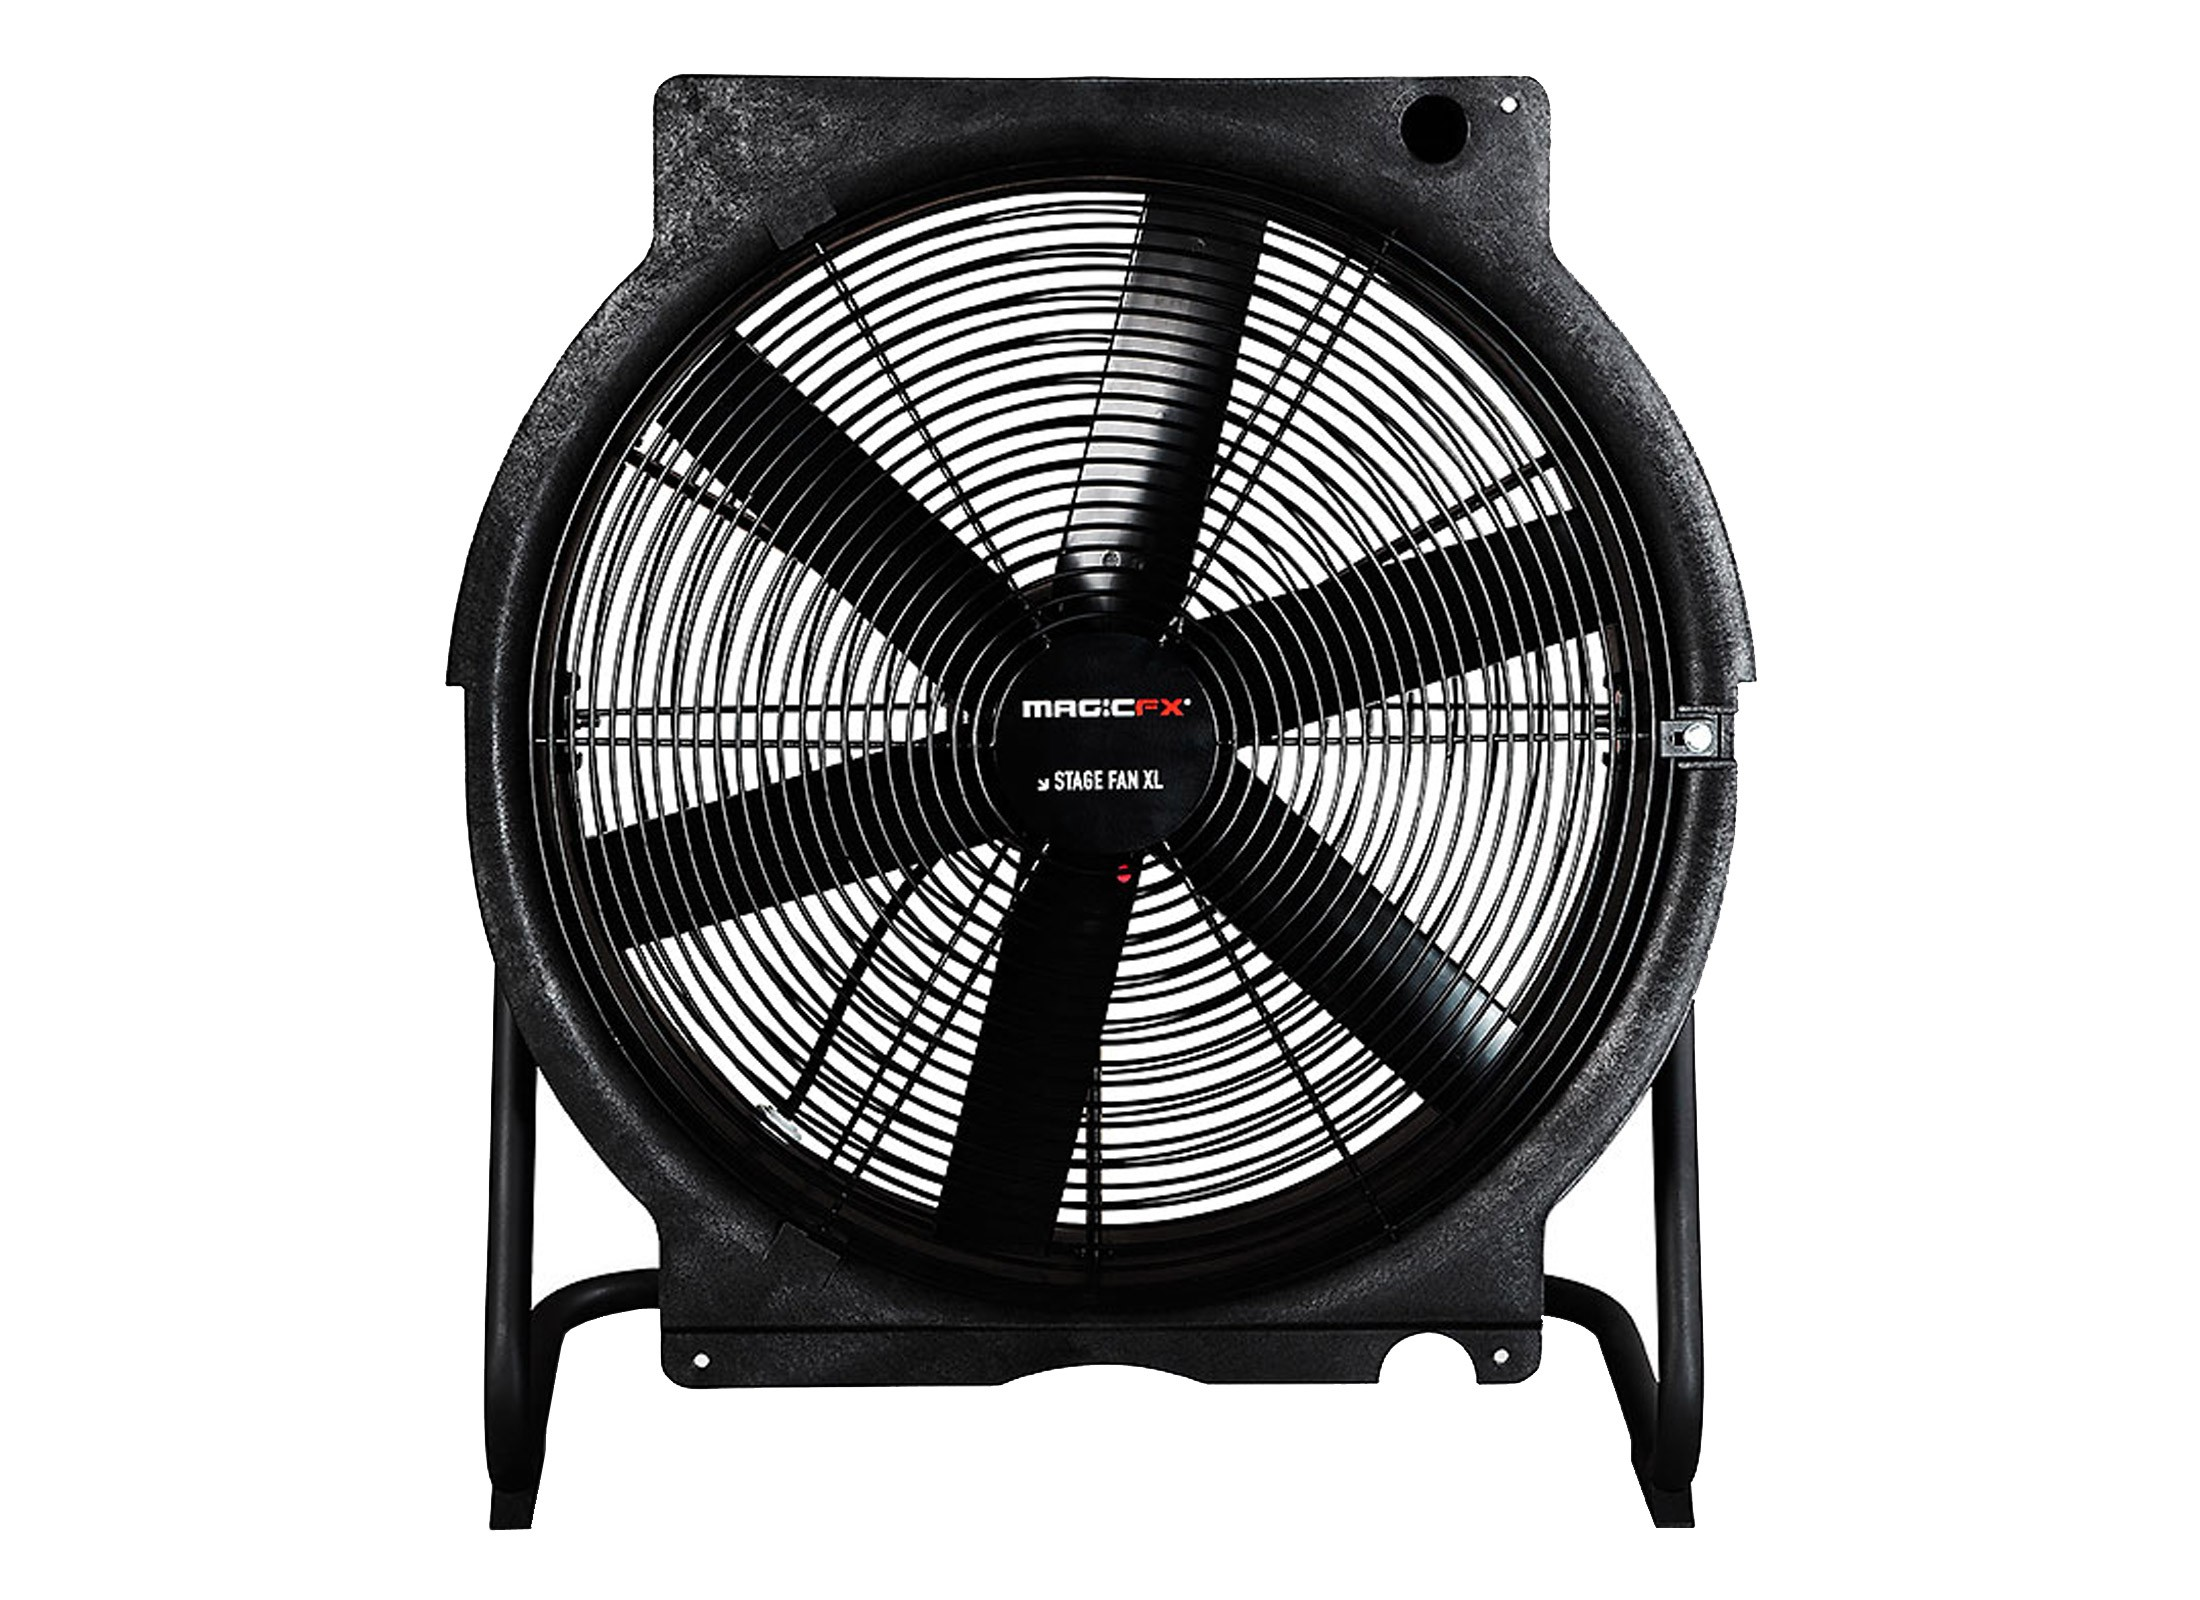 MagicFX 2502 STAGE FAN XL Ventilator Online At Low Prices At Huss ...